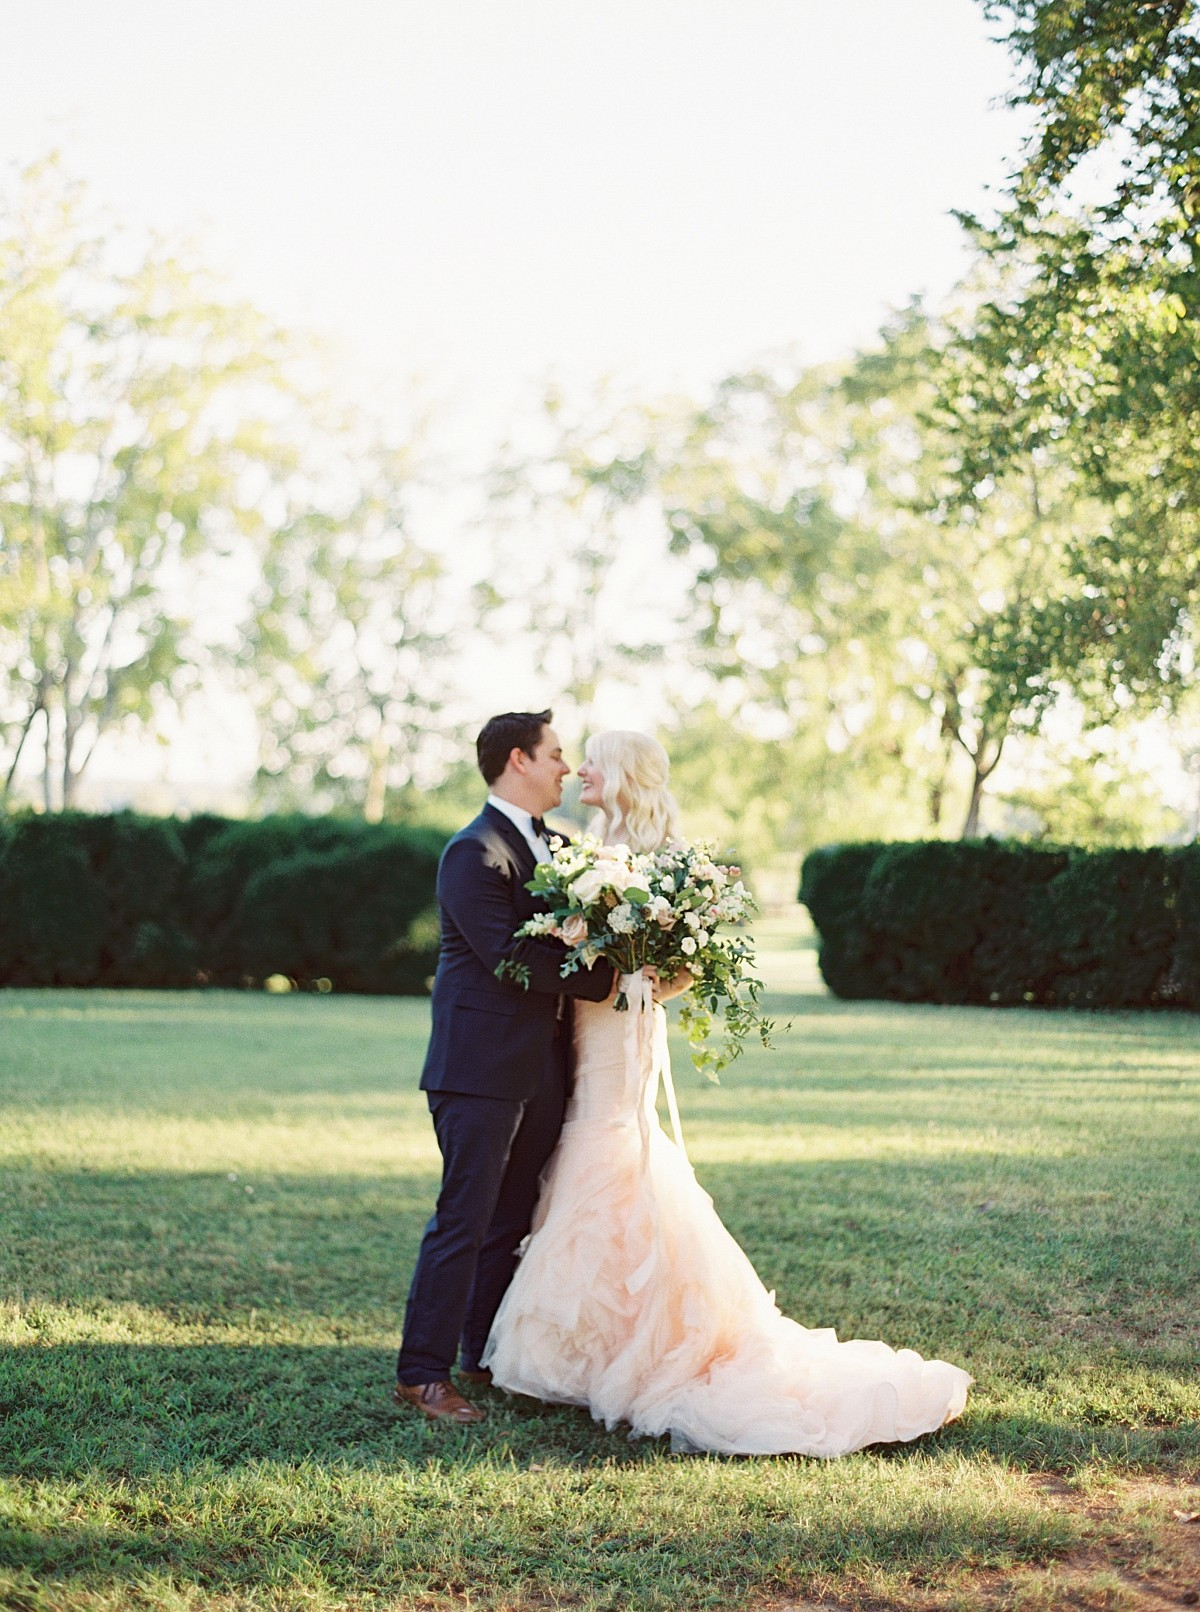 Sarah and Jon's Old World Intimate Vow Renewal